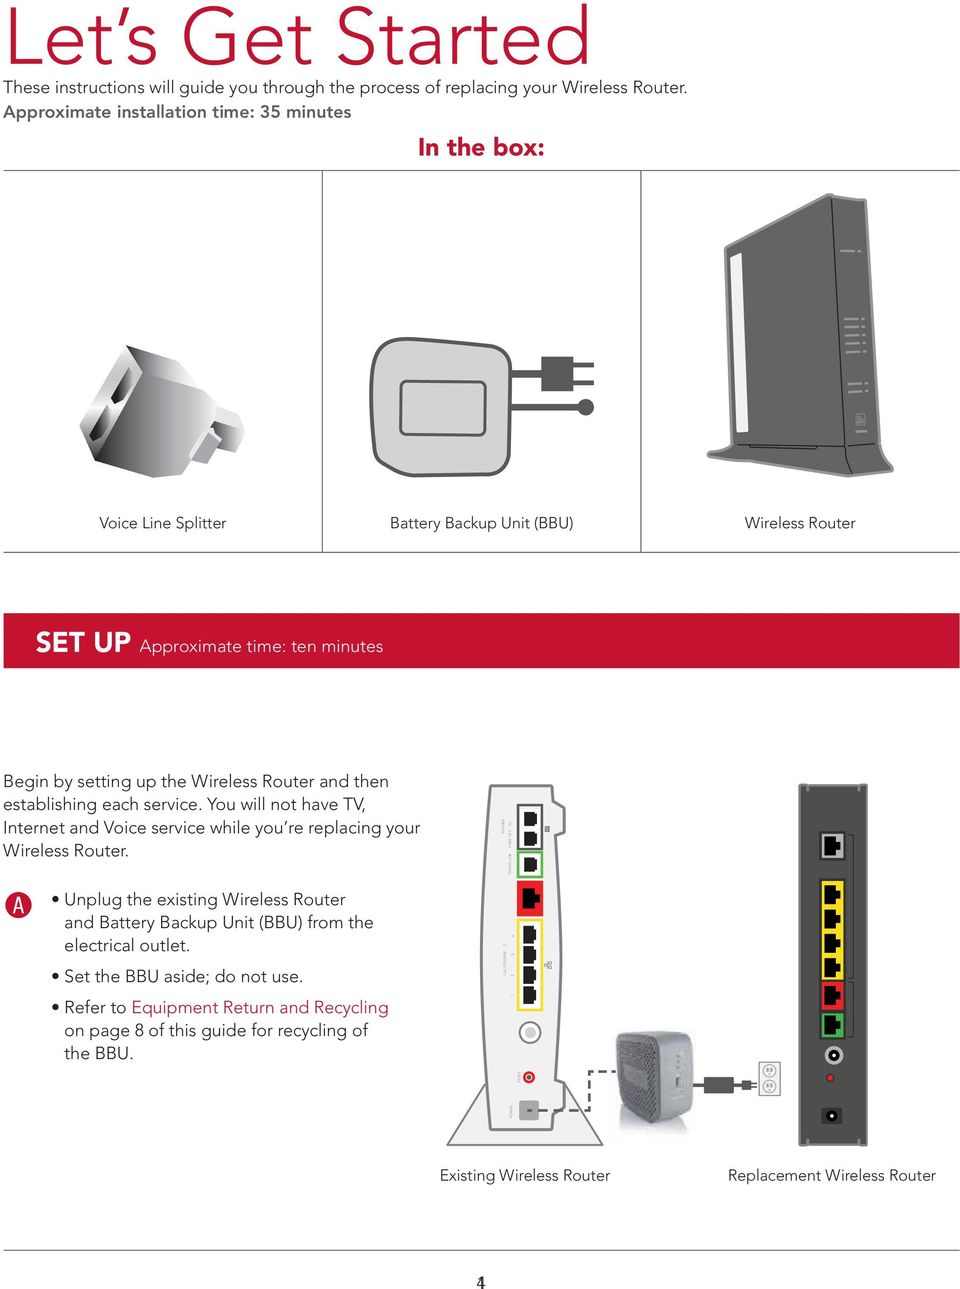 You will not have TV, Internet and Voice service while you re replacing your Wireless Router. A Unplug the existing Wireless Router and Battery Backup Unit (BBU) from the electrical outlet.